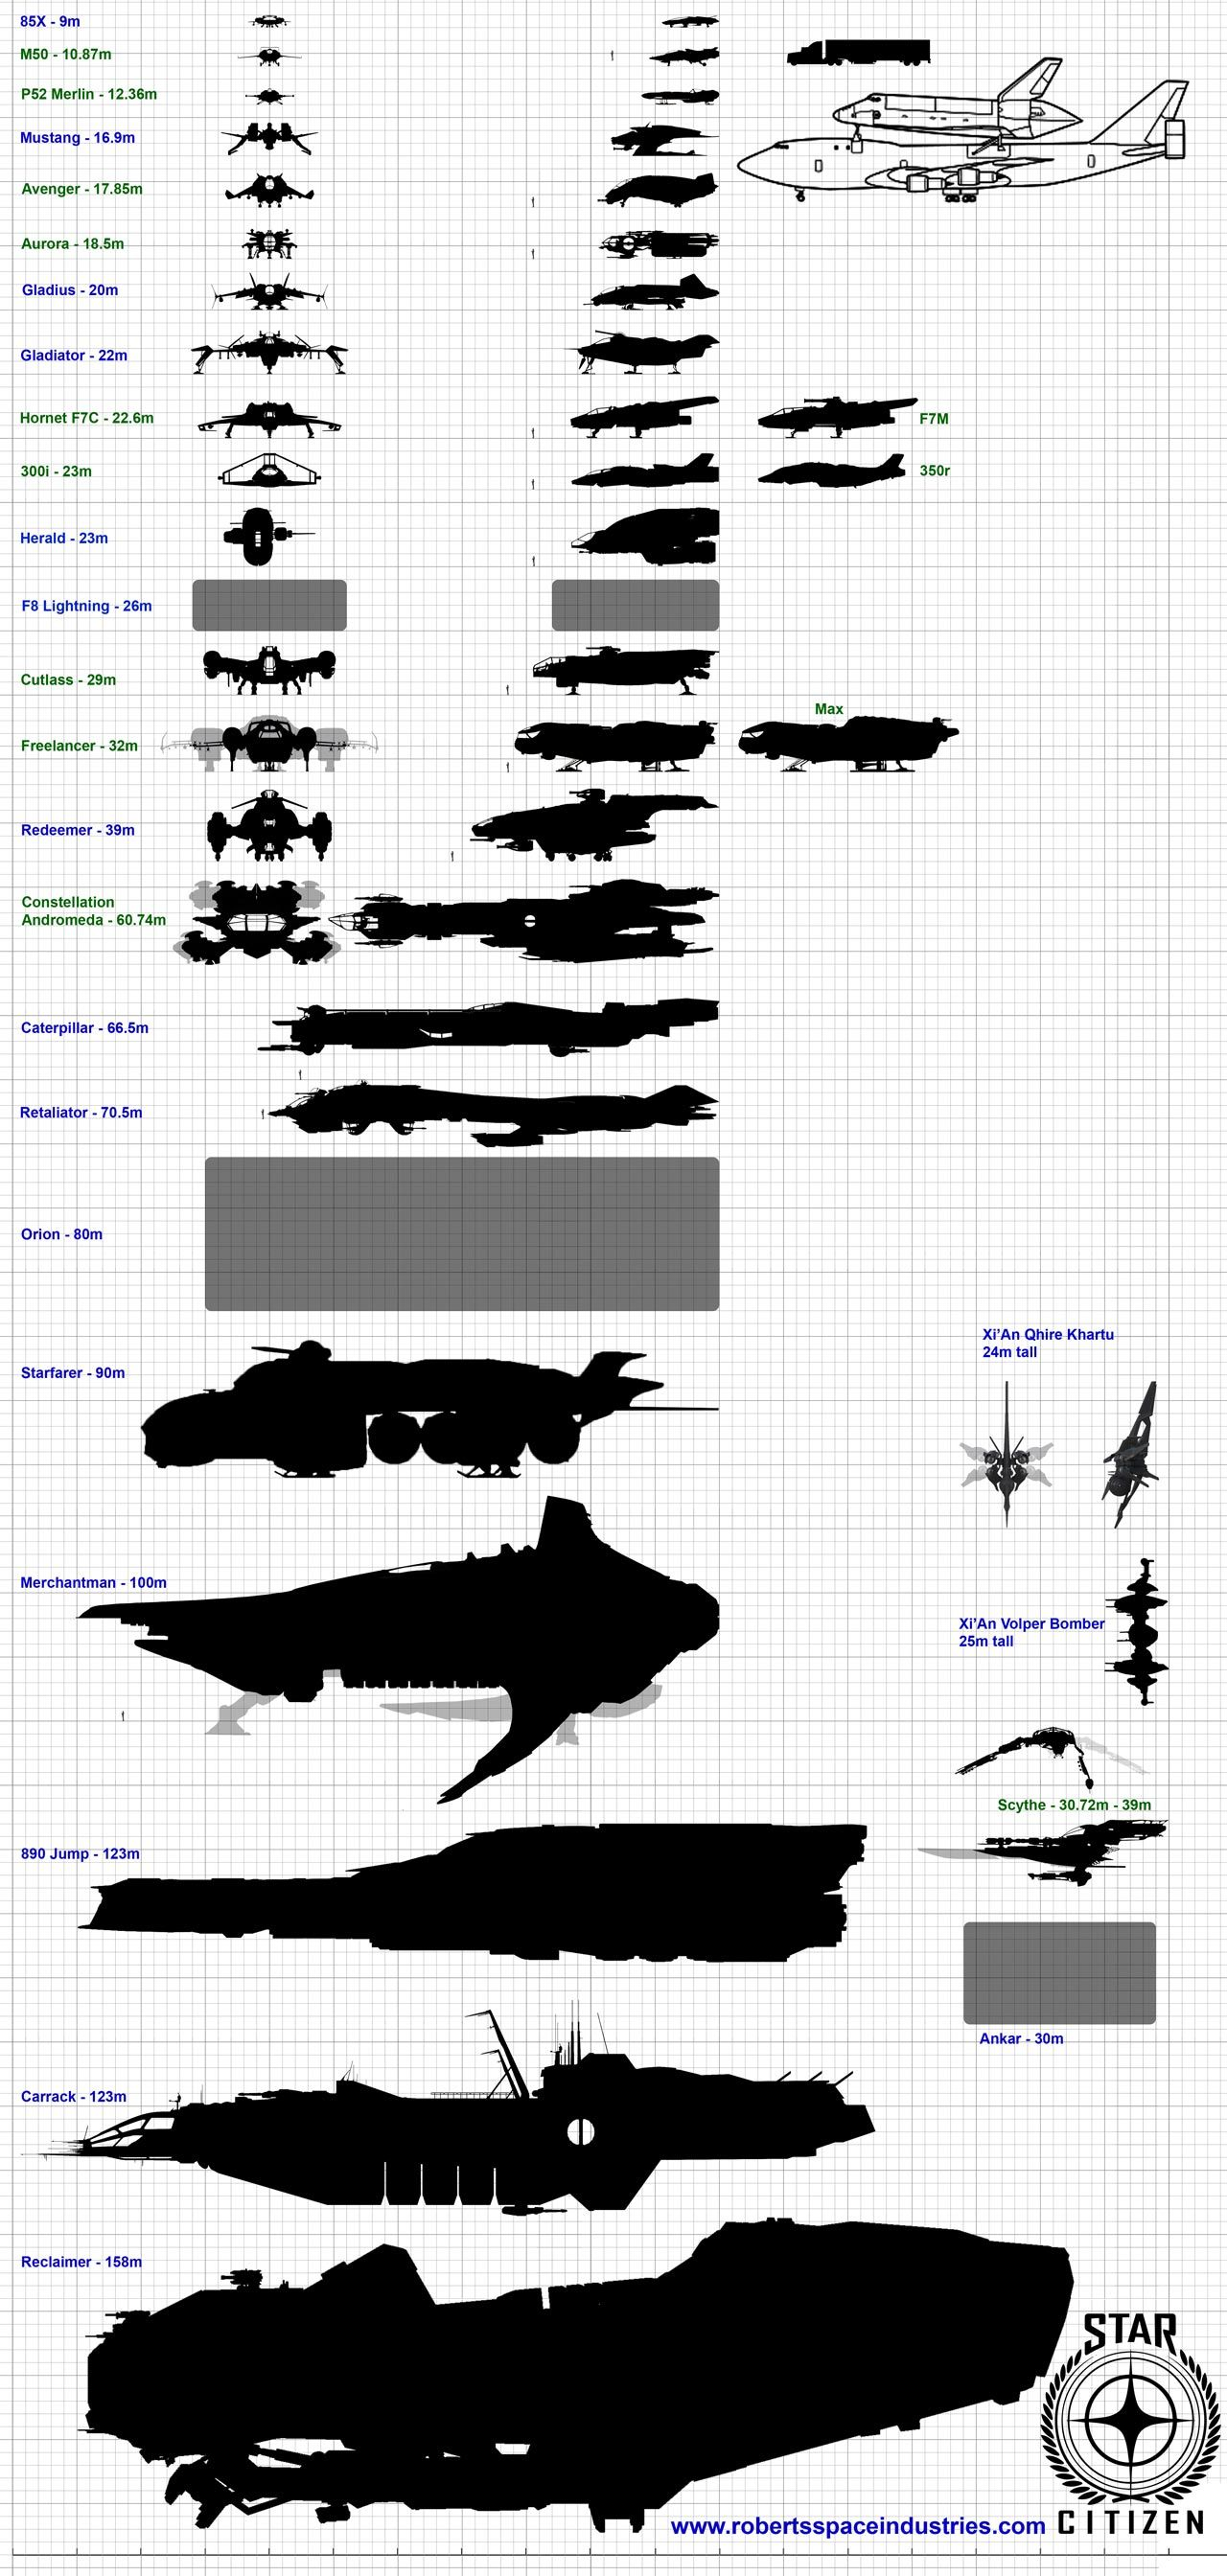 small resolution of ship size comparison 1280 2688 to the sky pinterestship size comparison 1280